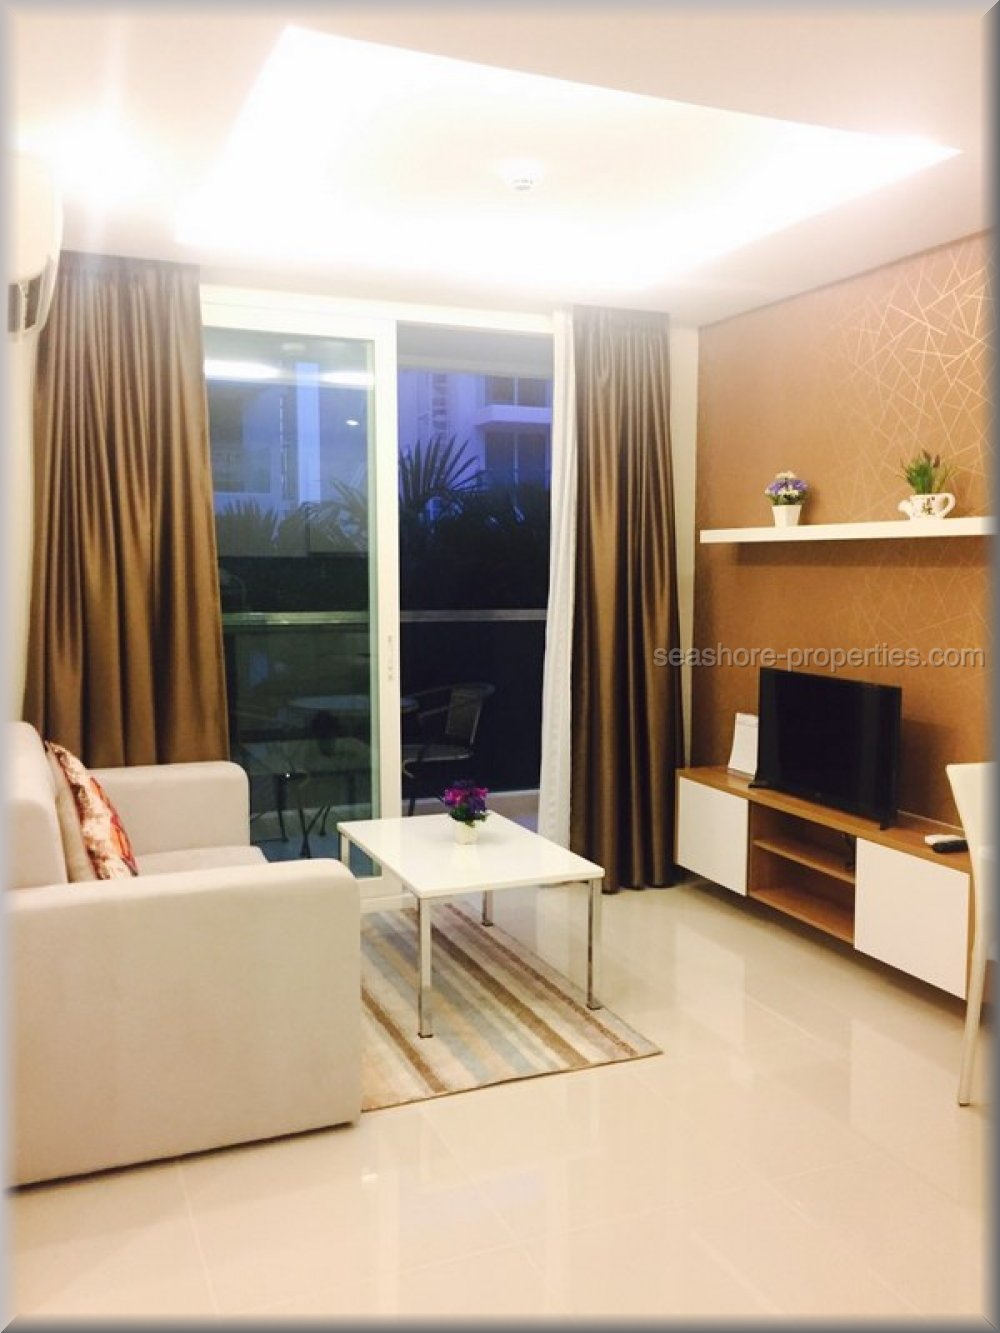 paradise park - new affordable one bedroom for rent Condominiums to rent in Jomtien Pattaya